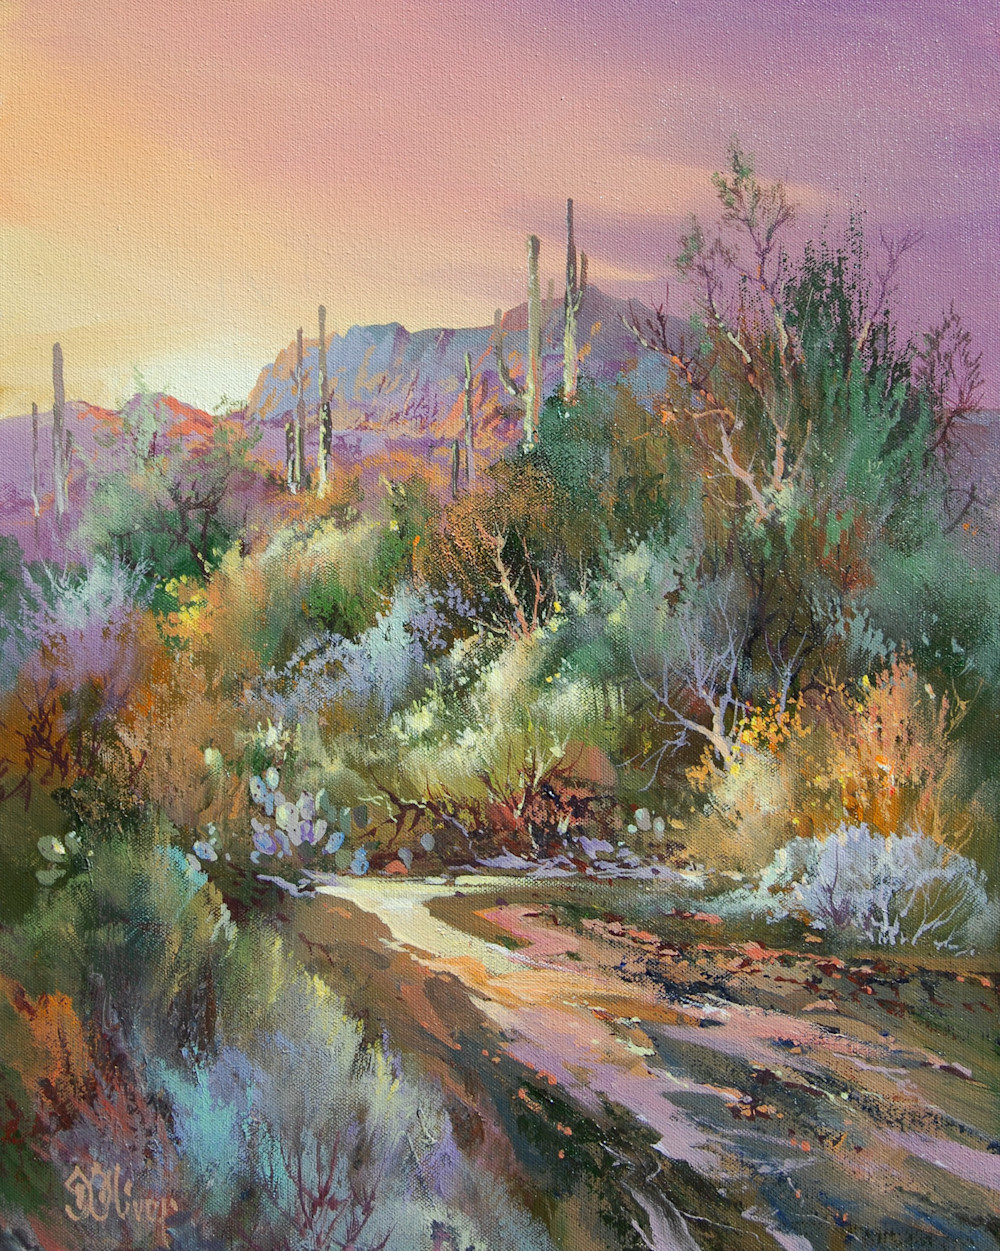 Back Country Trail | Southwest Art Gallery Tuson | Doug Oliver